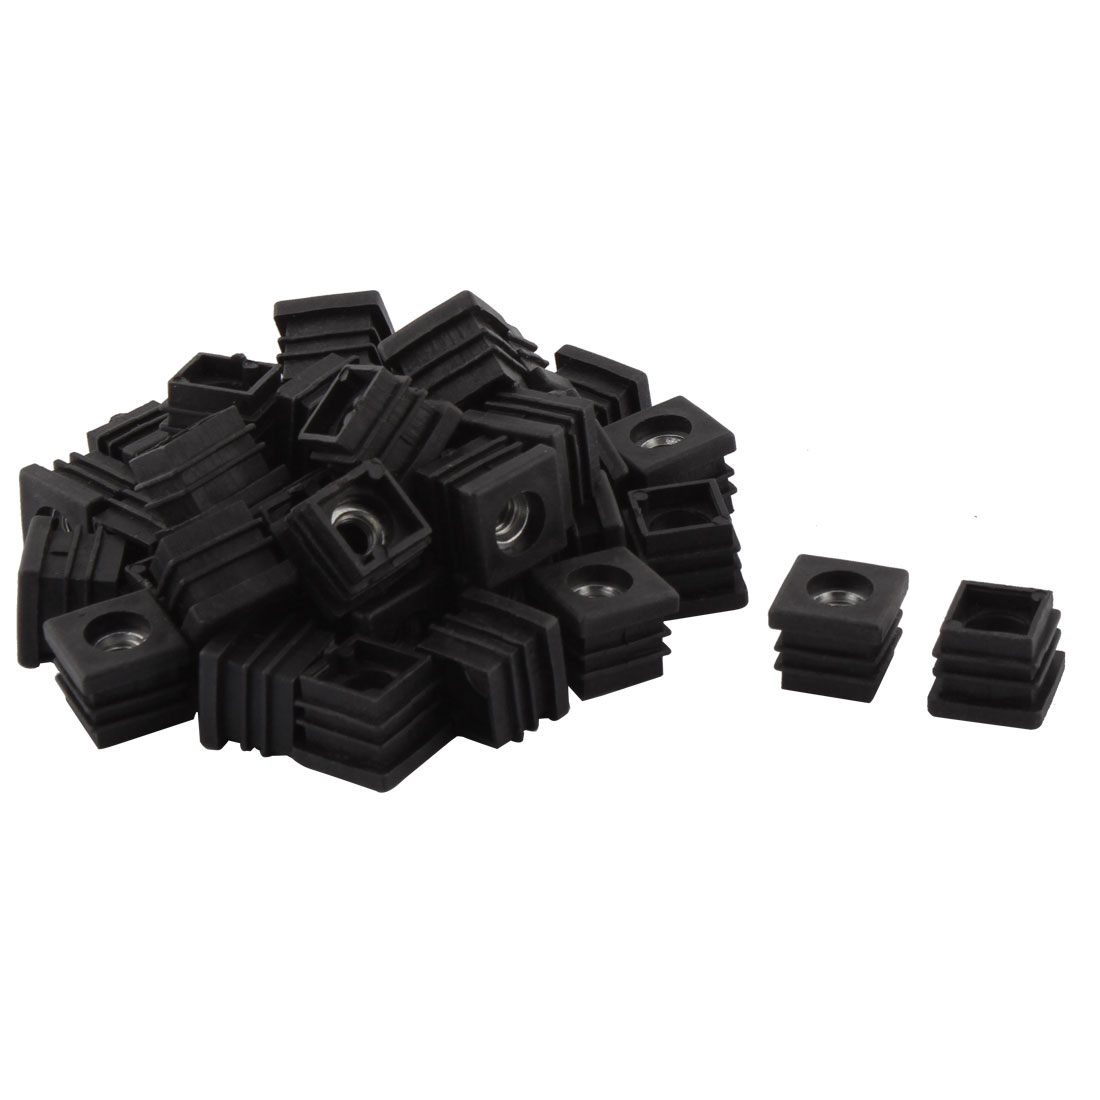 Household Plastic Square Shaped Chair Leg Tube Pipe Insert Black 2 x 2cm 40 PCS